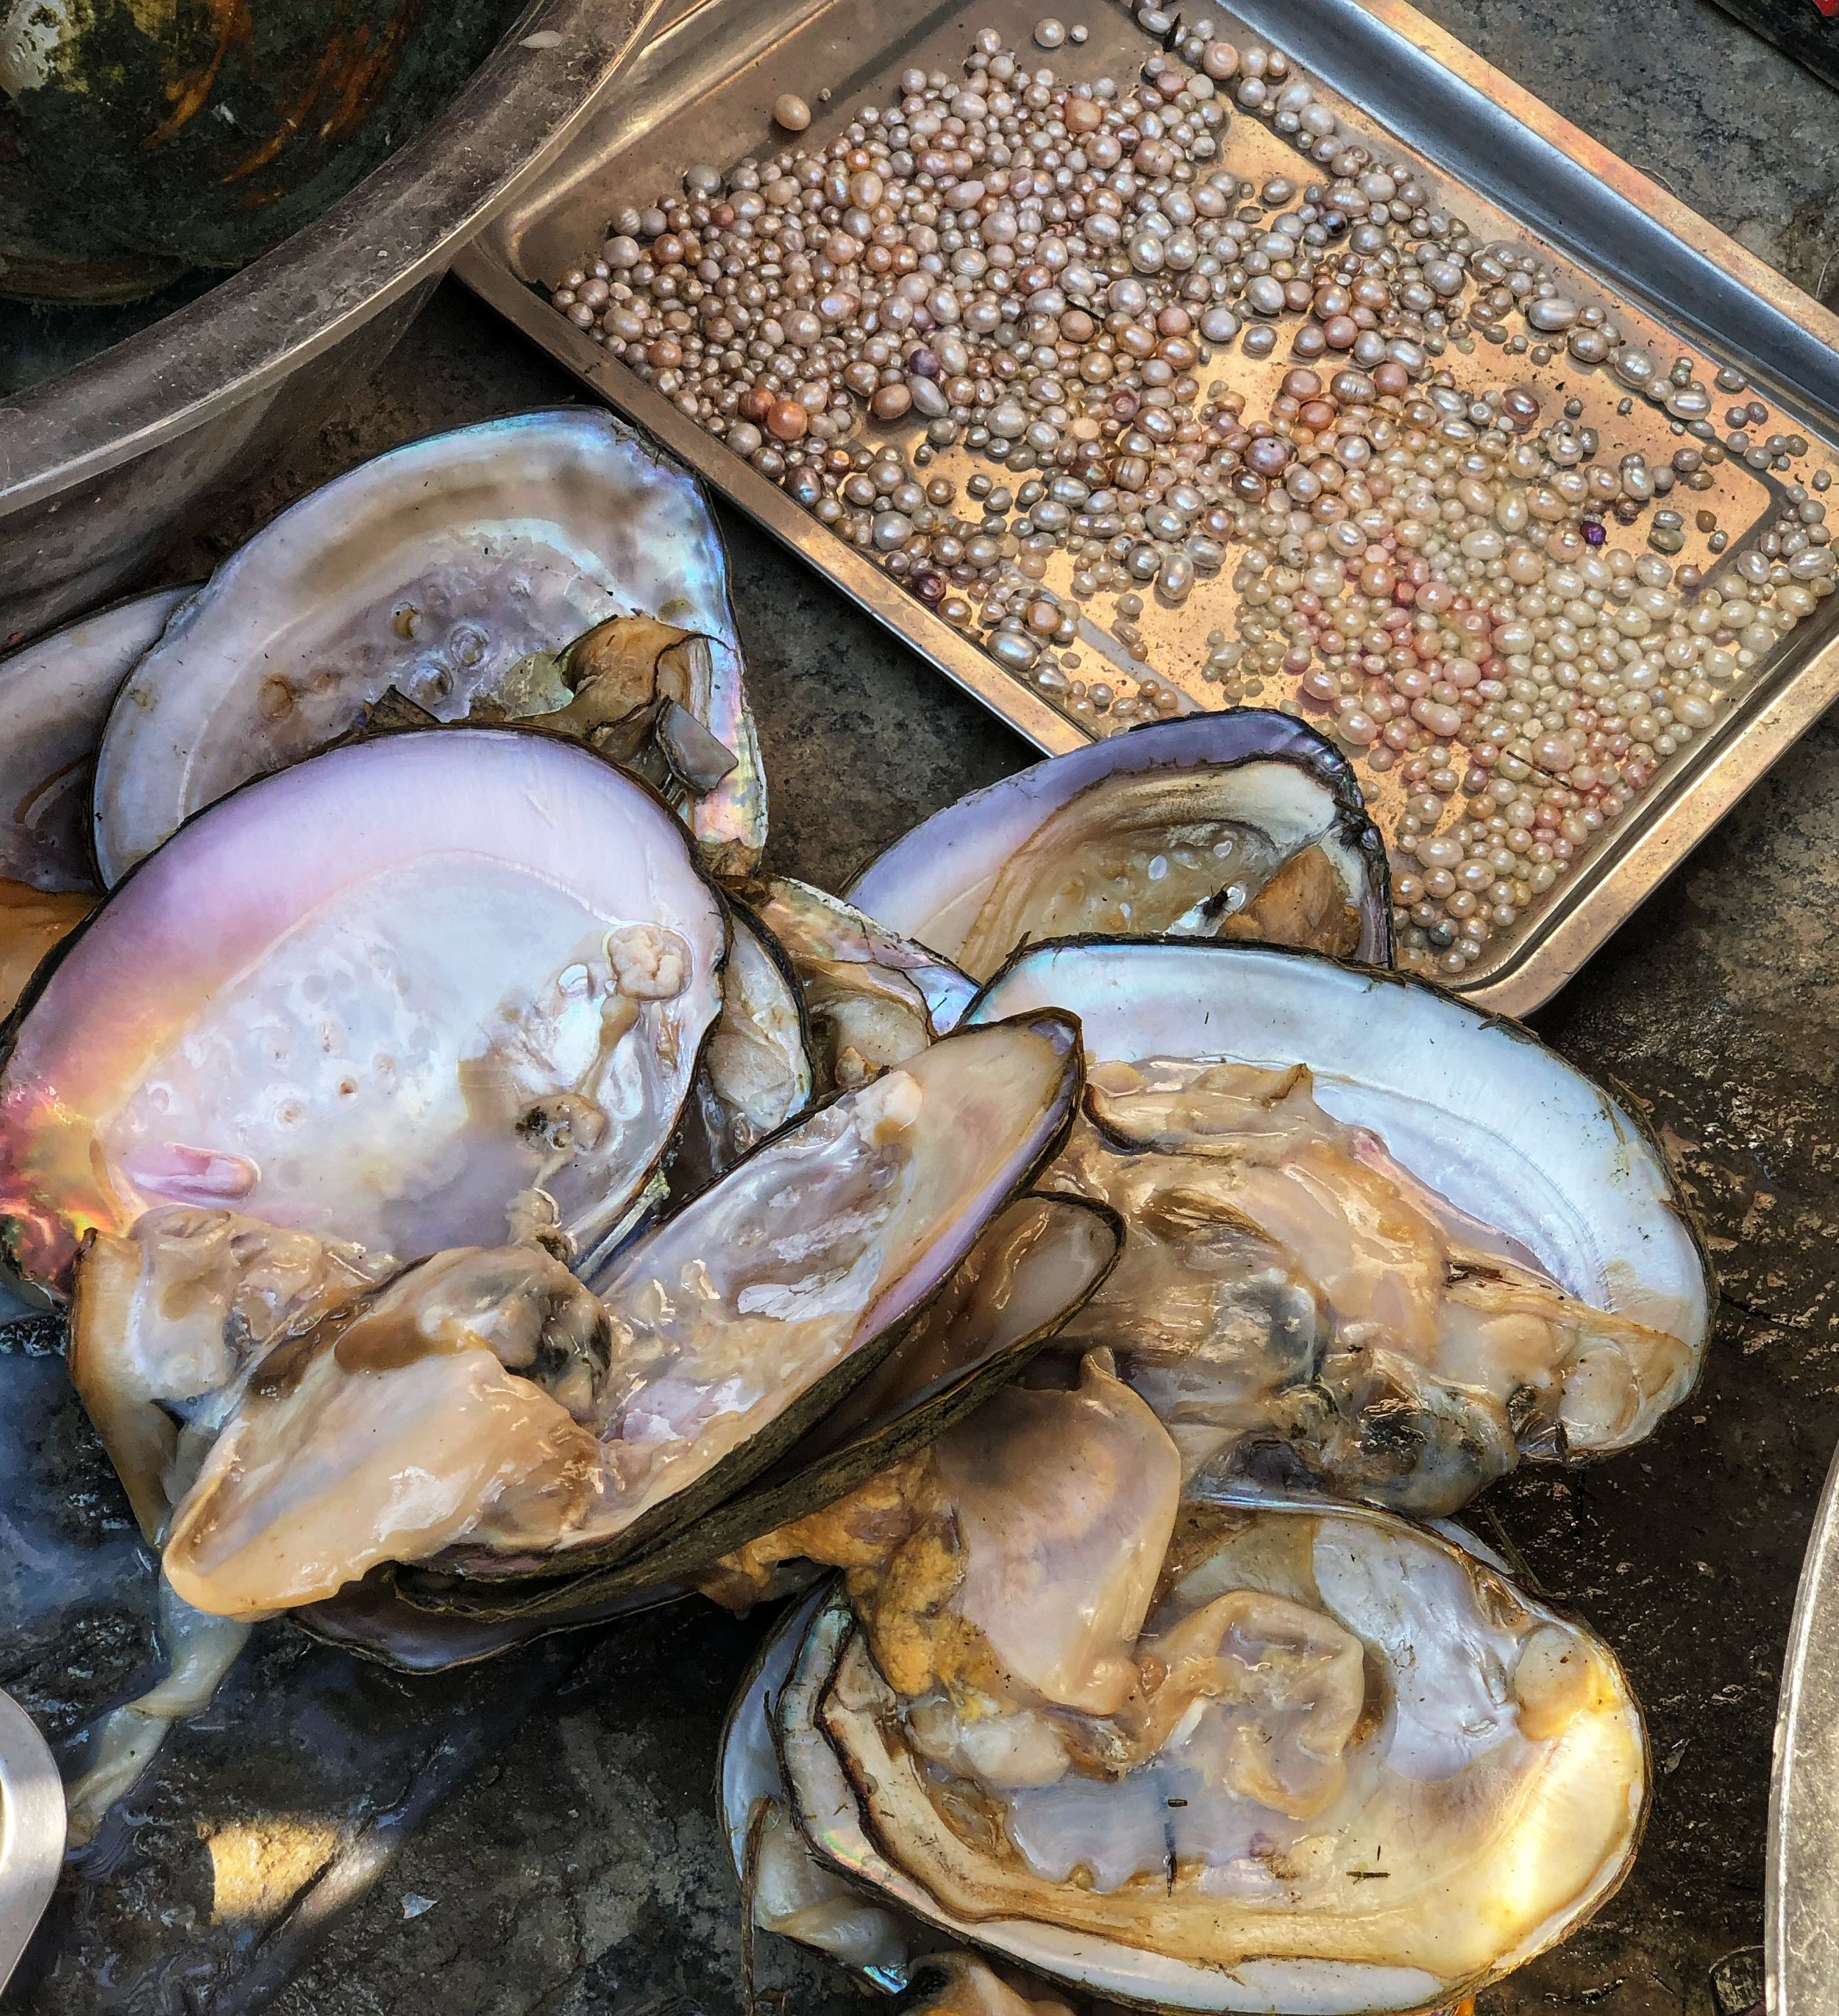 Oysters with pearls.